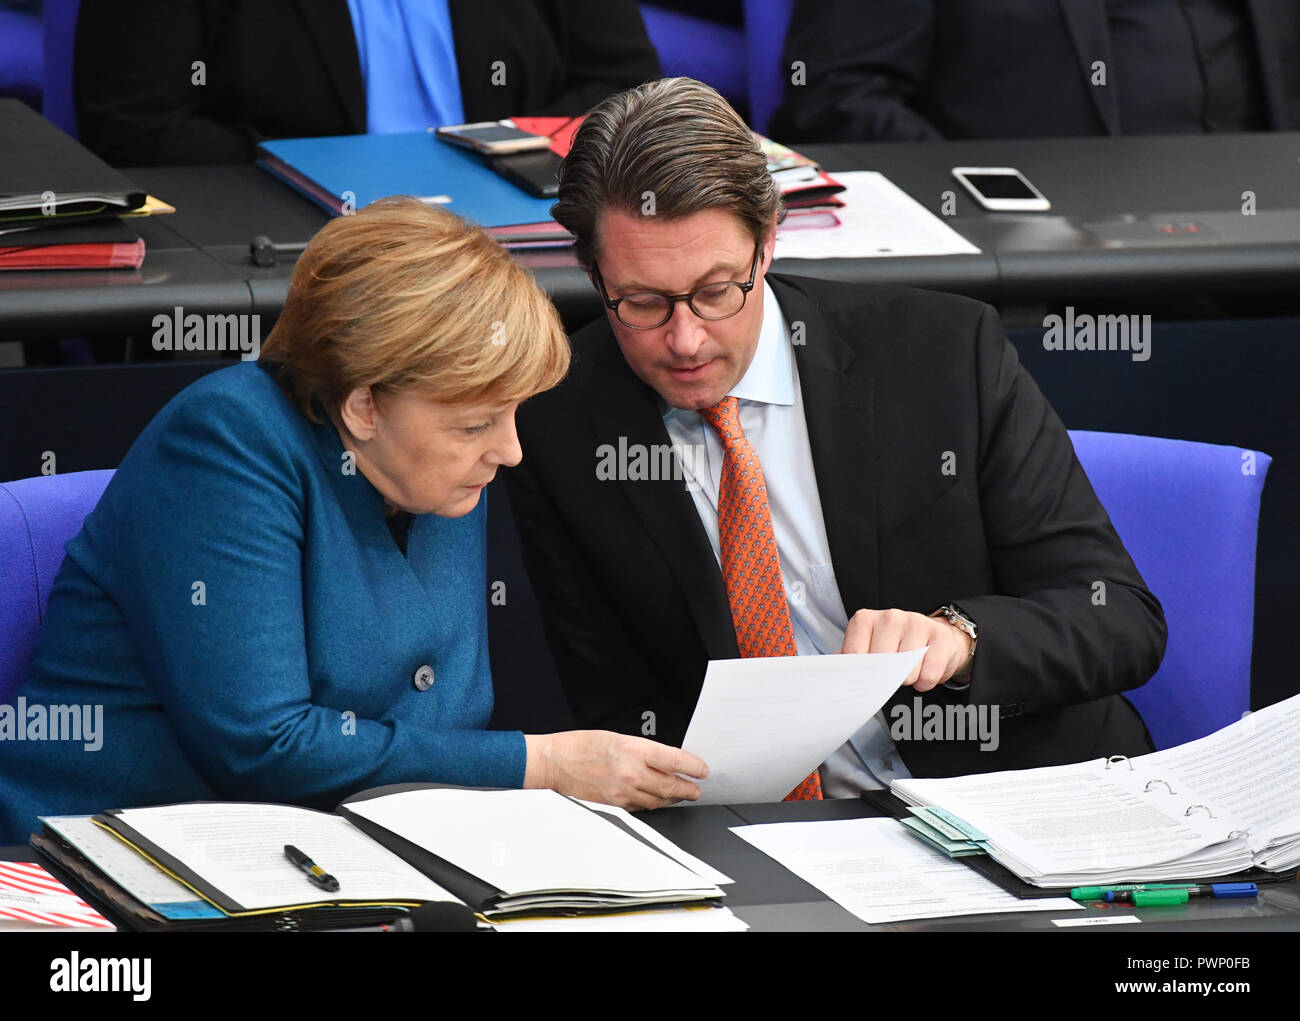 Berlin, Germany. 17th Oct, 2018. Federal Chancellor Angela Merkel (CDU) talks to Transport Minister Andreas Scheuer (CSU) at the plenary session of the German Bundestag after her government statement on the EU summit in Brussels at the government bank. The 57th session of the 19th legislature will focus on European policy. Photo: Bernd Von Jutrczenka/dpa Credit: dpa picture alliance/Alamy Live News - Stock Image